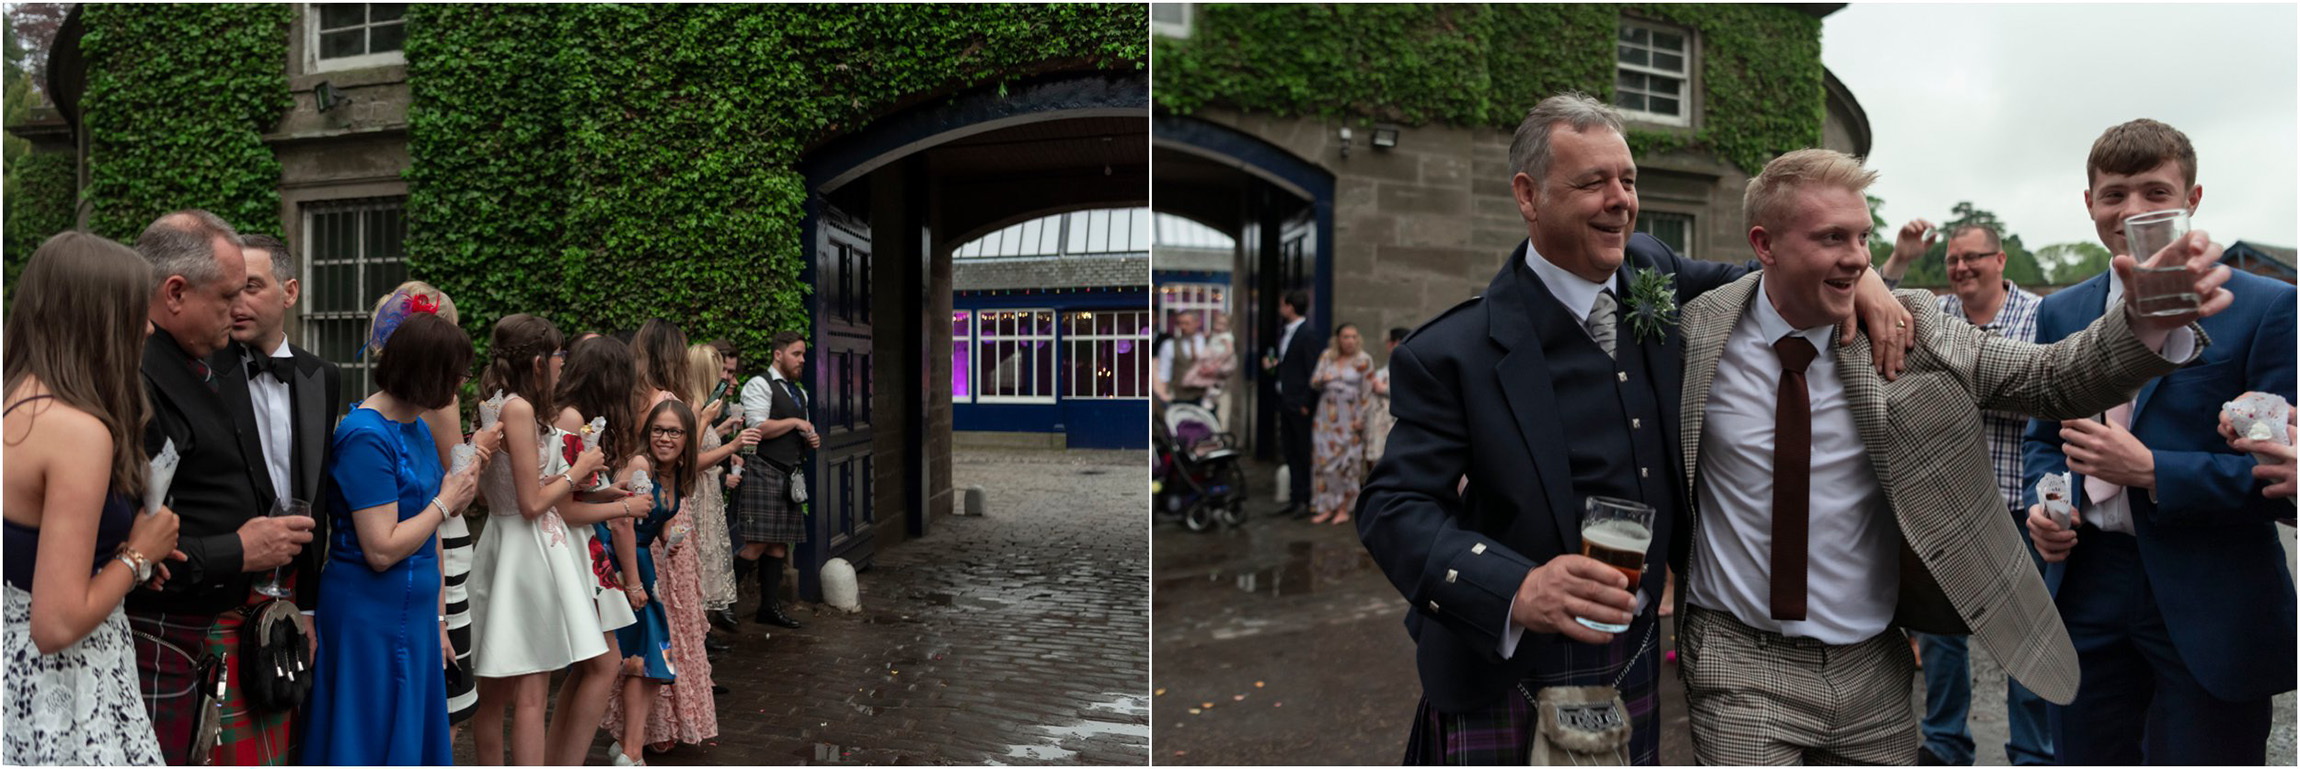 ©FianderFoto_Scotland Wedding Photographer_Errol Park Estate_Janine_Karl_160.jpg